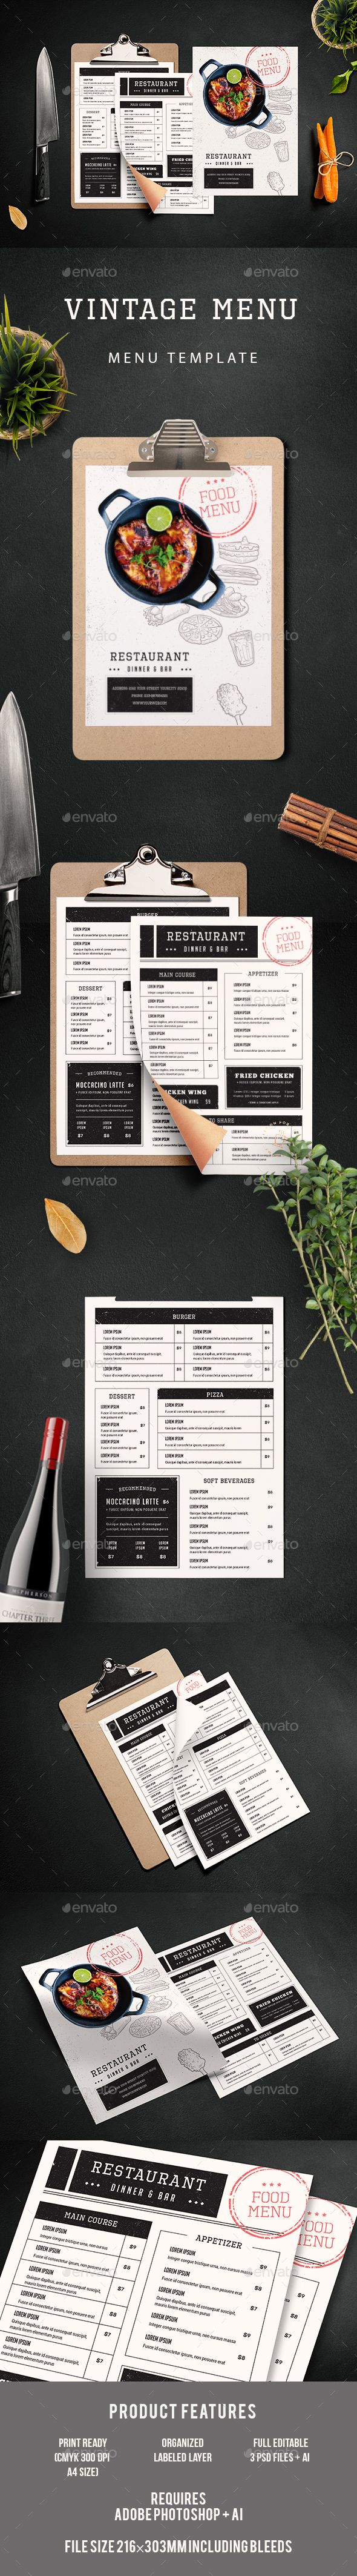 Vintage Menu — Photoshop PSD #bistro #burger menu • Download ➝ https://graphicriver.net/item/vintage-menu/19198851?ref=pxcr